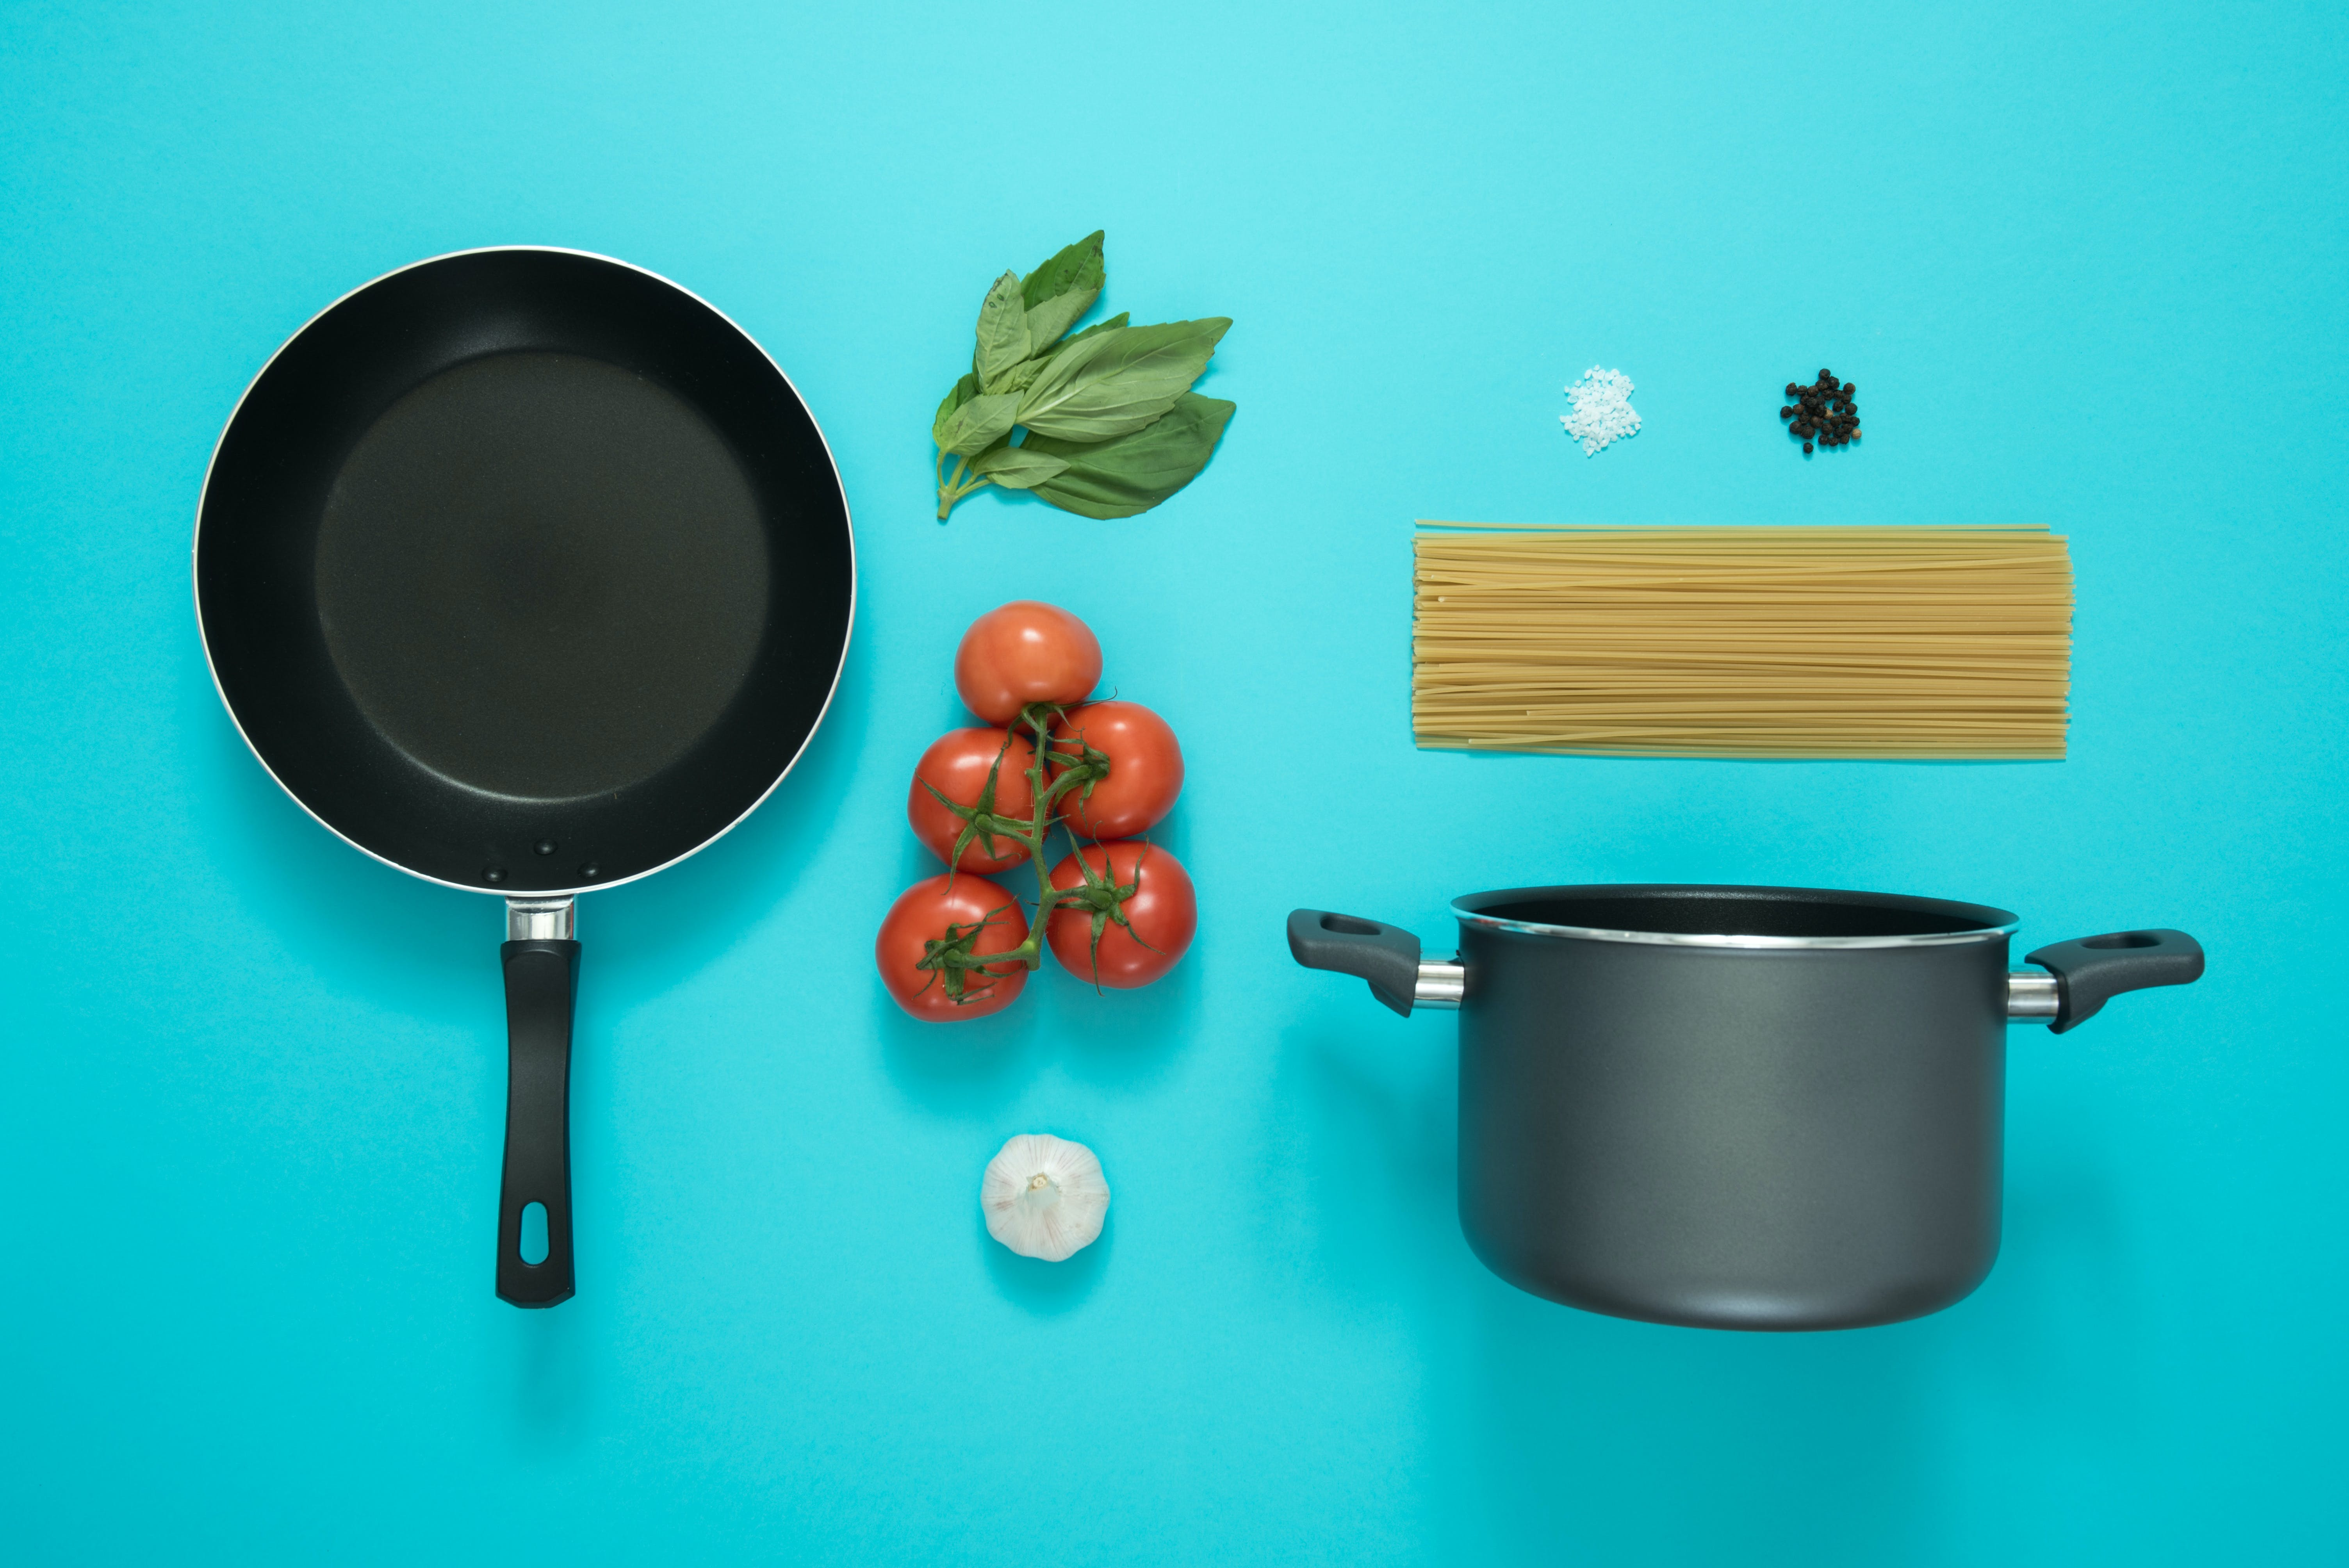 Black and Gray Cooking Pot and Frying Pan With Tomatoes